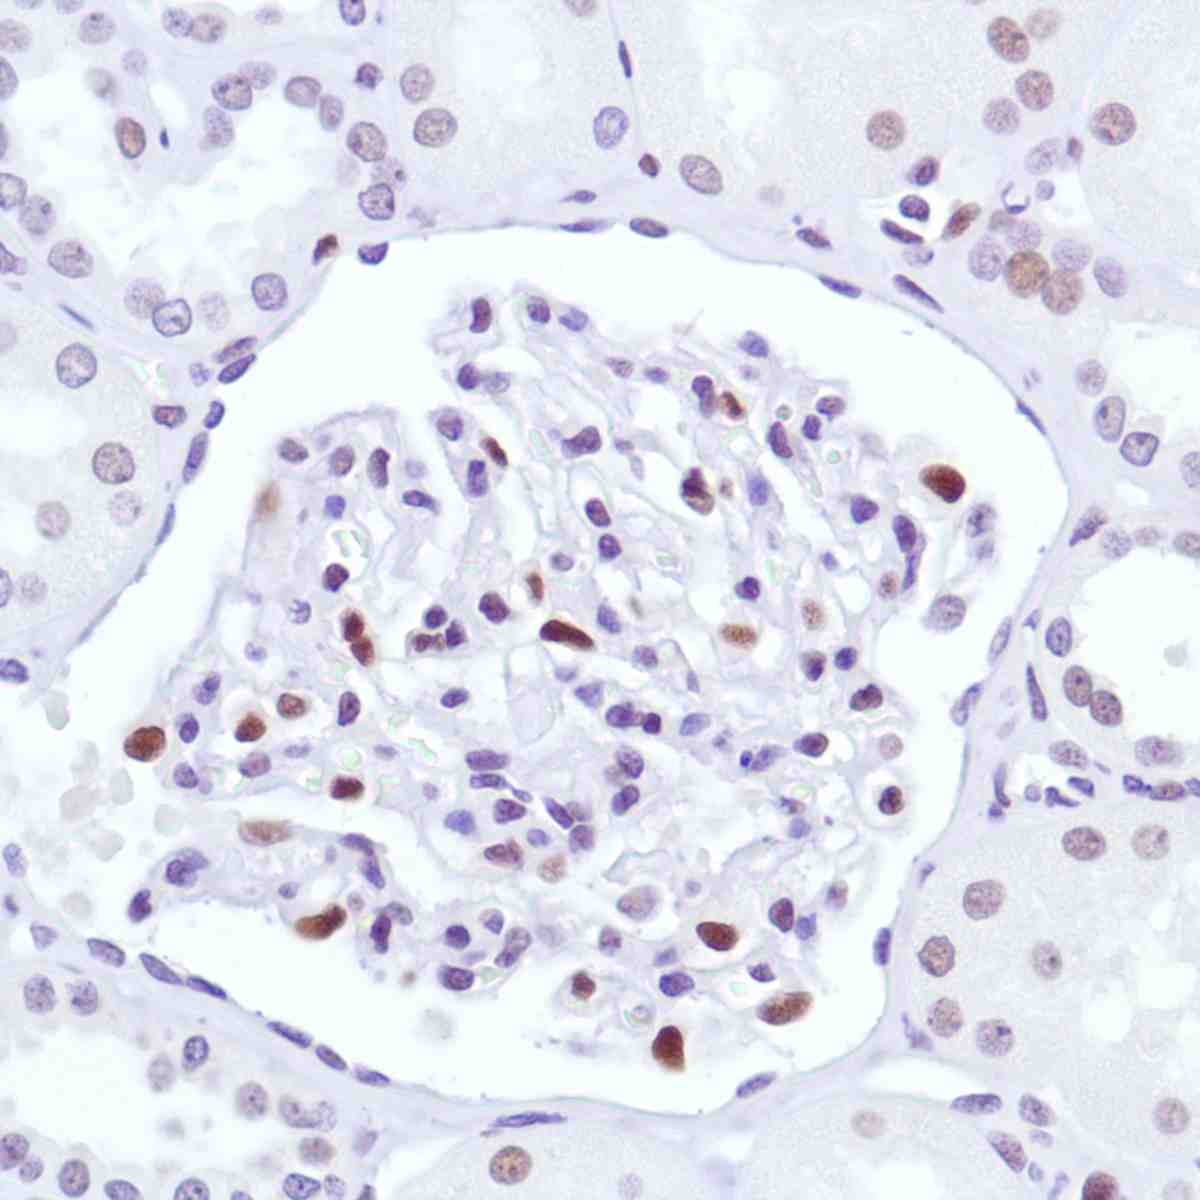 Human Kidney stained with anti-Cyclin D3 antibody